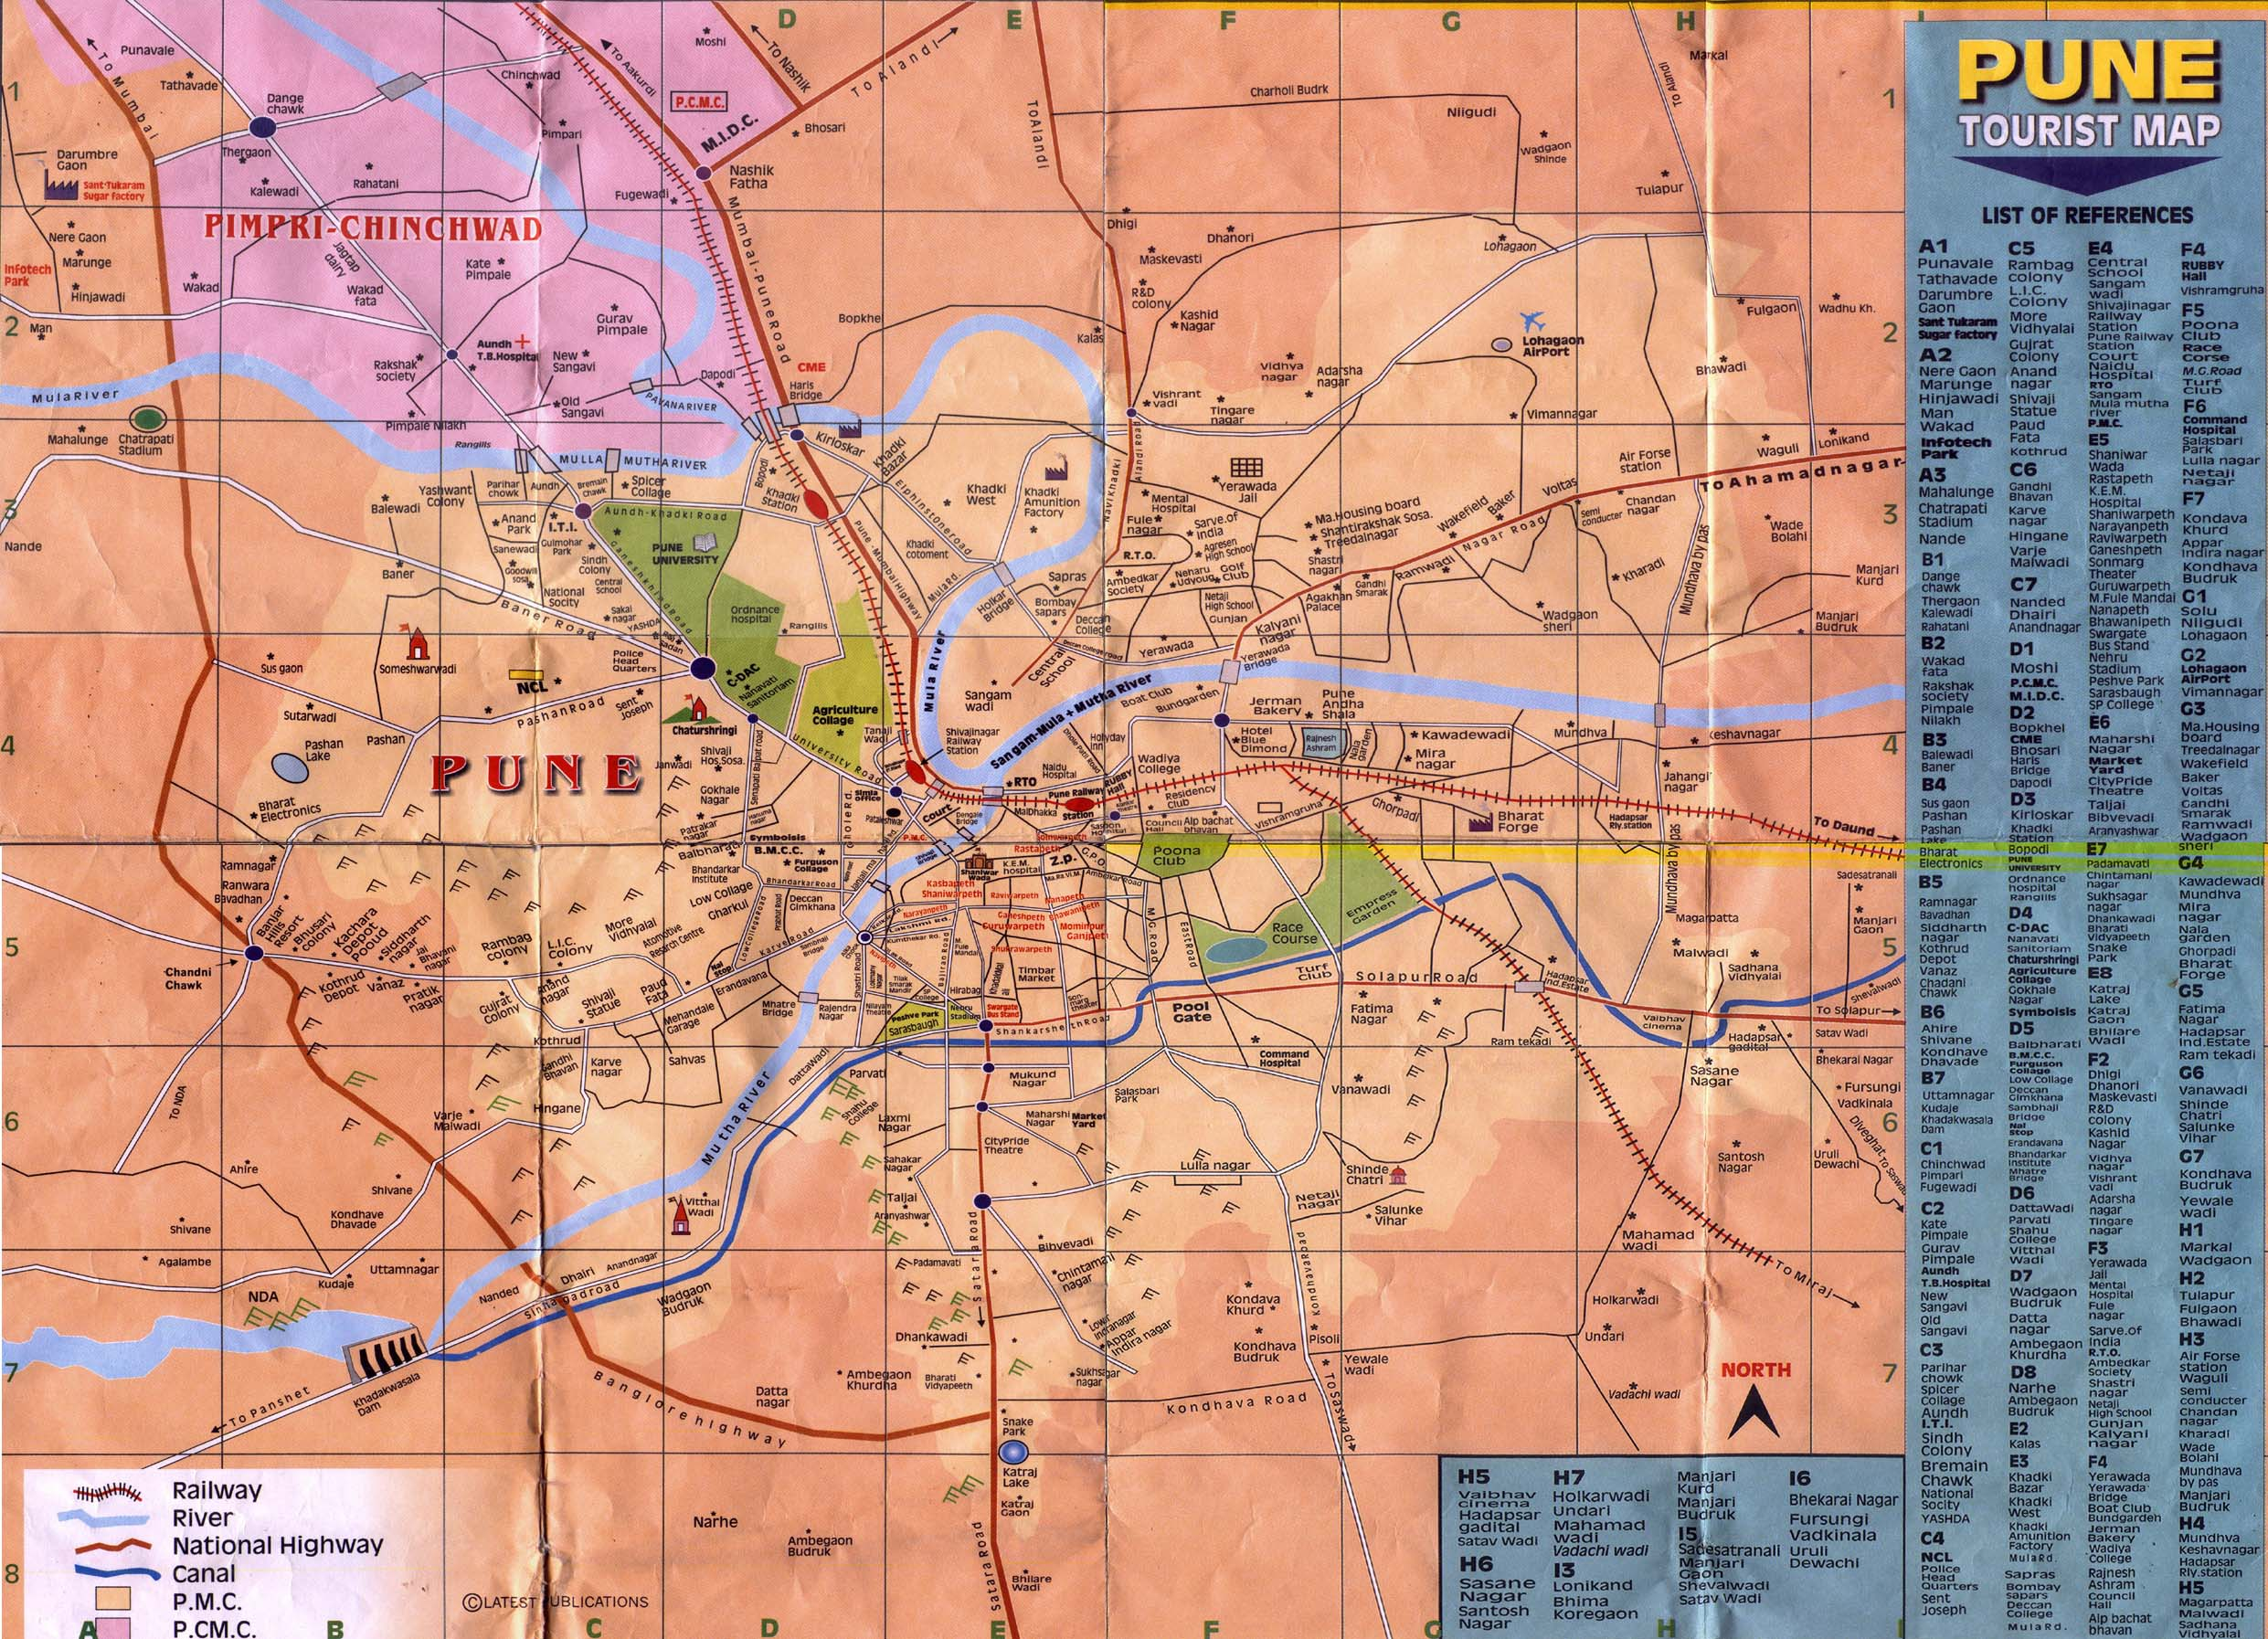 Pune tourist map see map details from ankitjain info